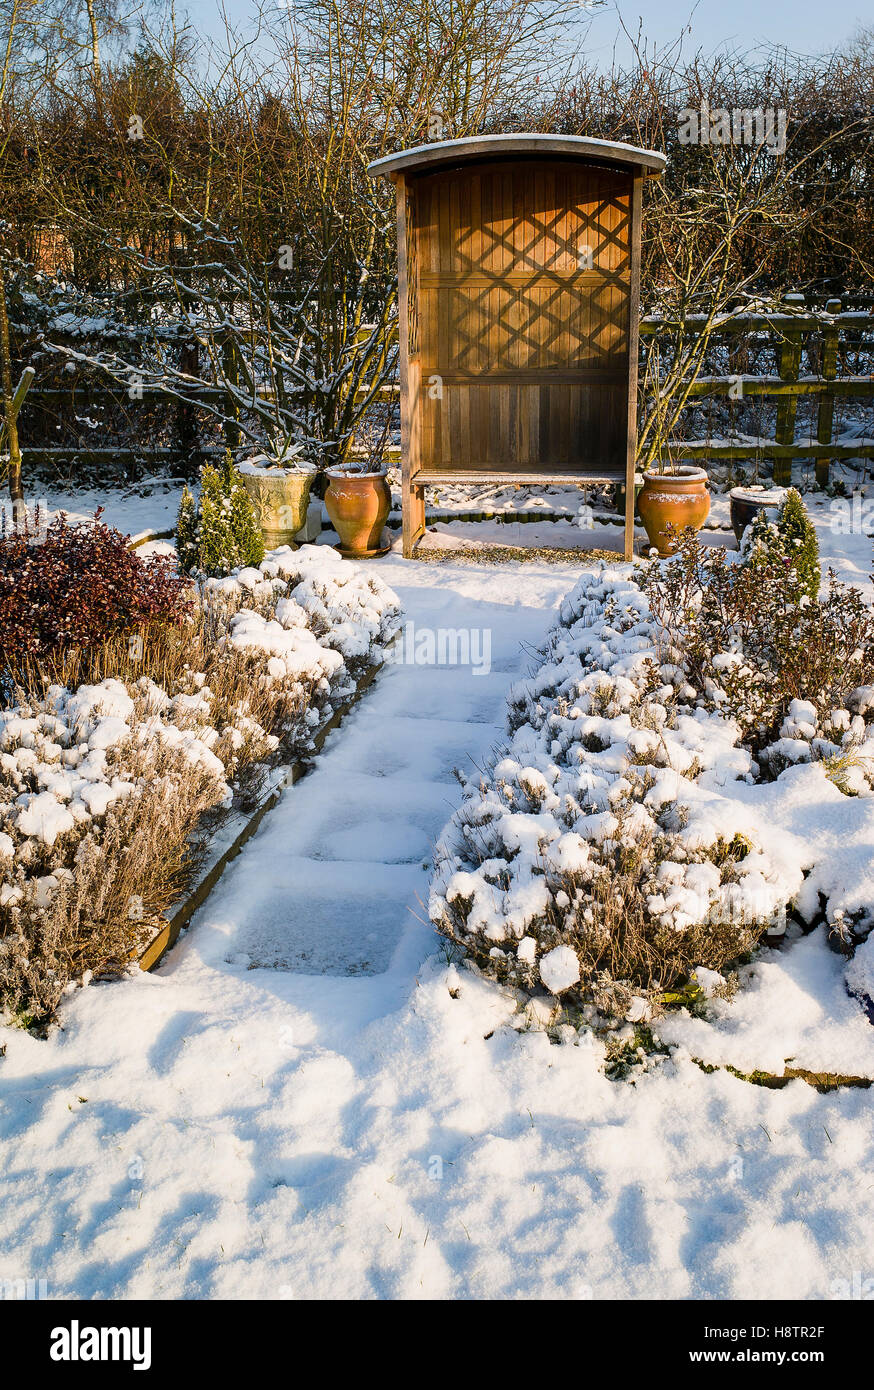 Winter Snow In A Small Garden With Path And Shelter